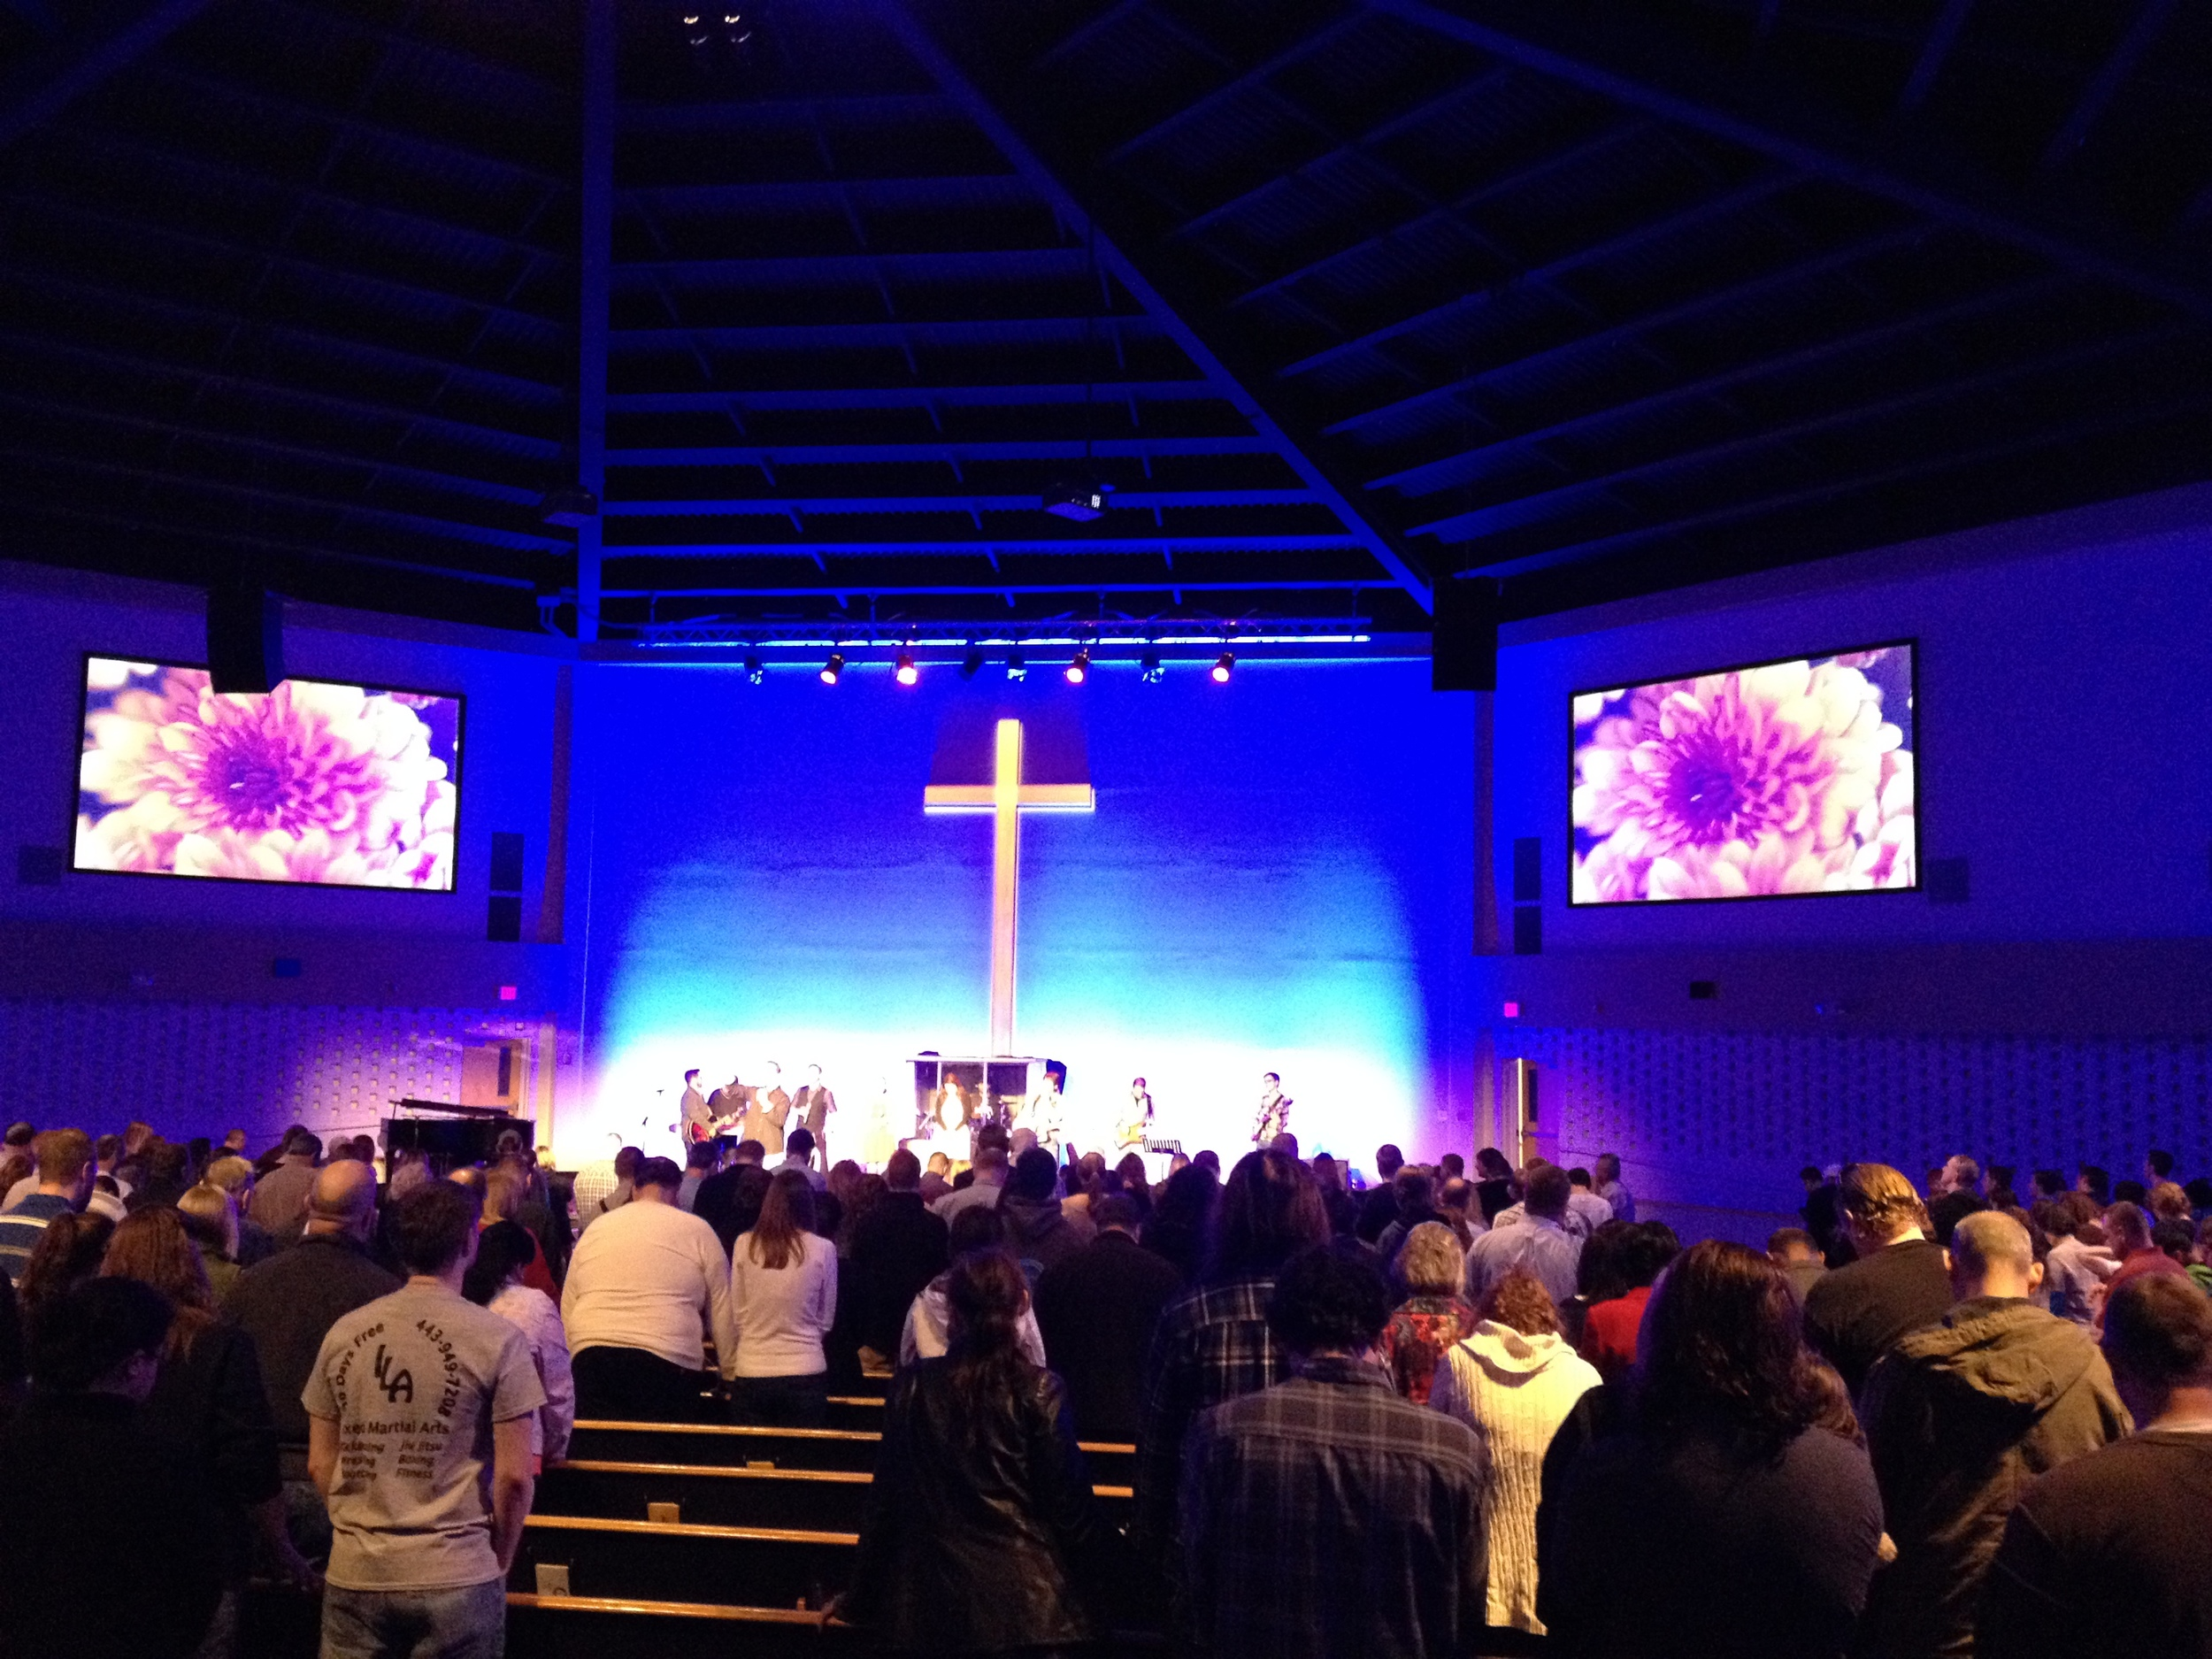 Chesapeake_Christian_Fellowship_Church_39.jpg